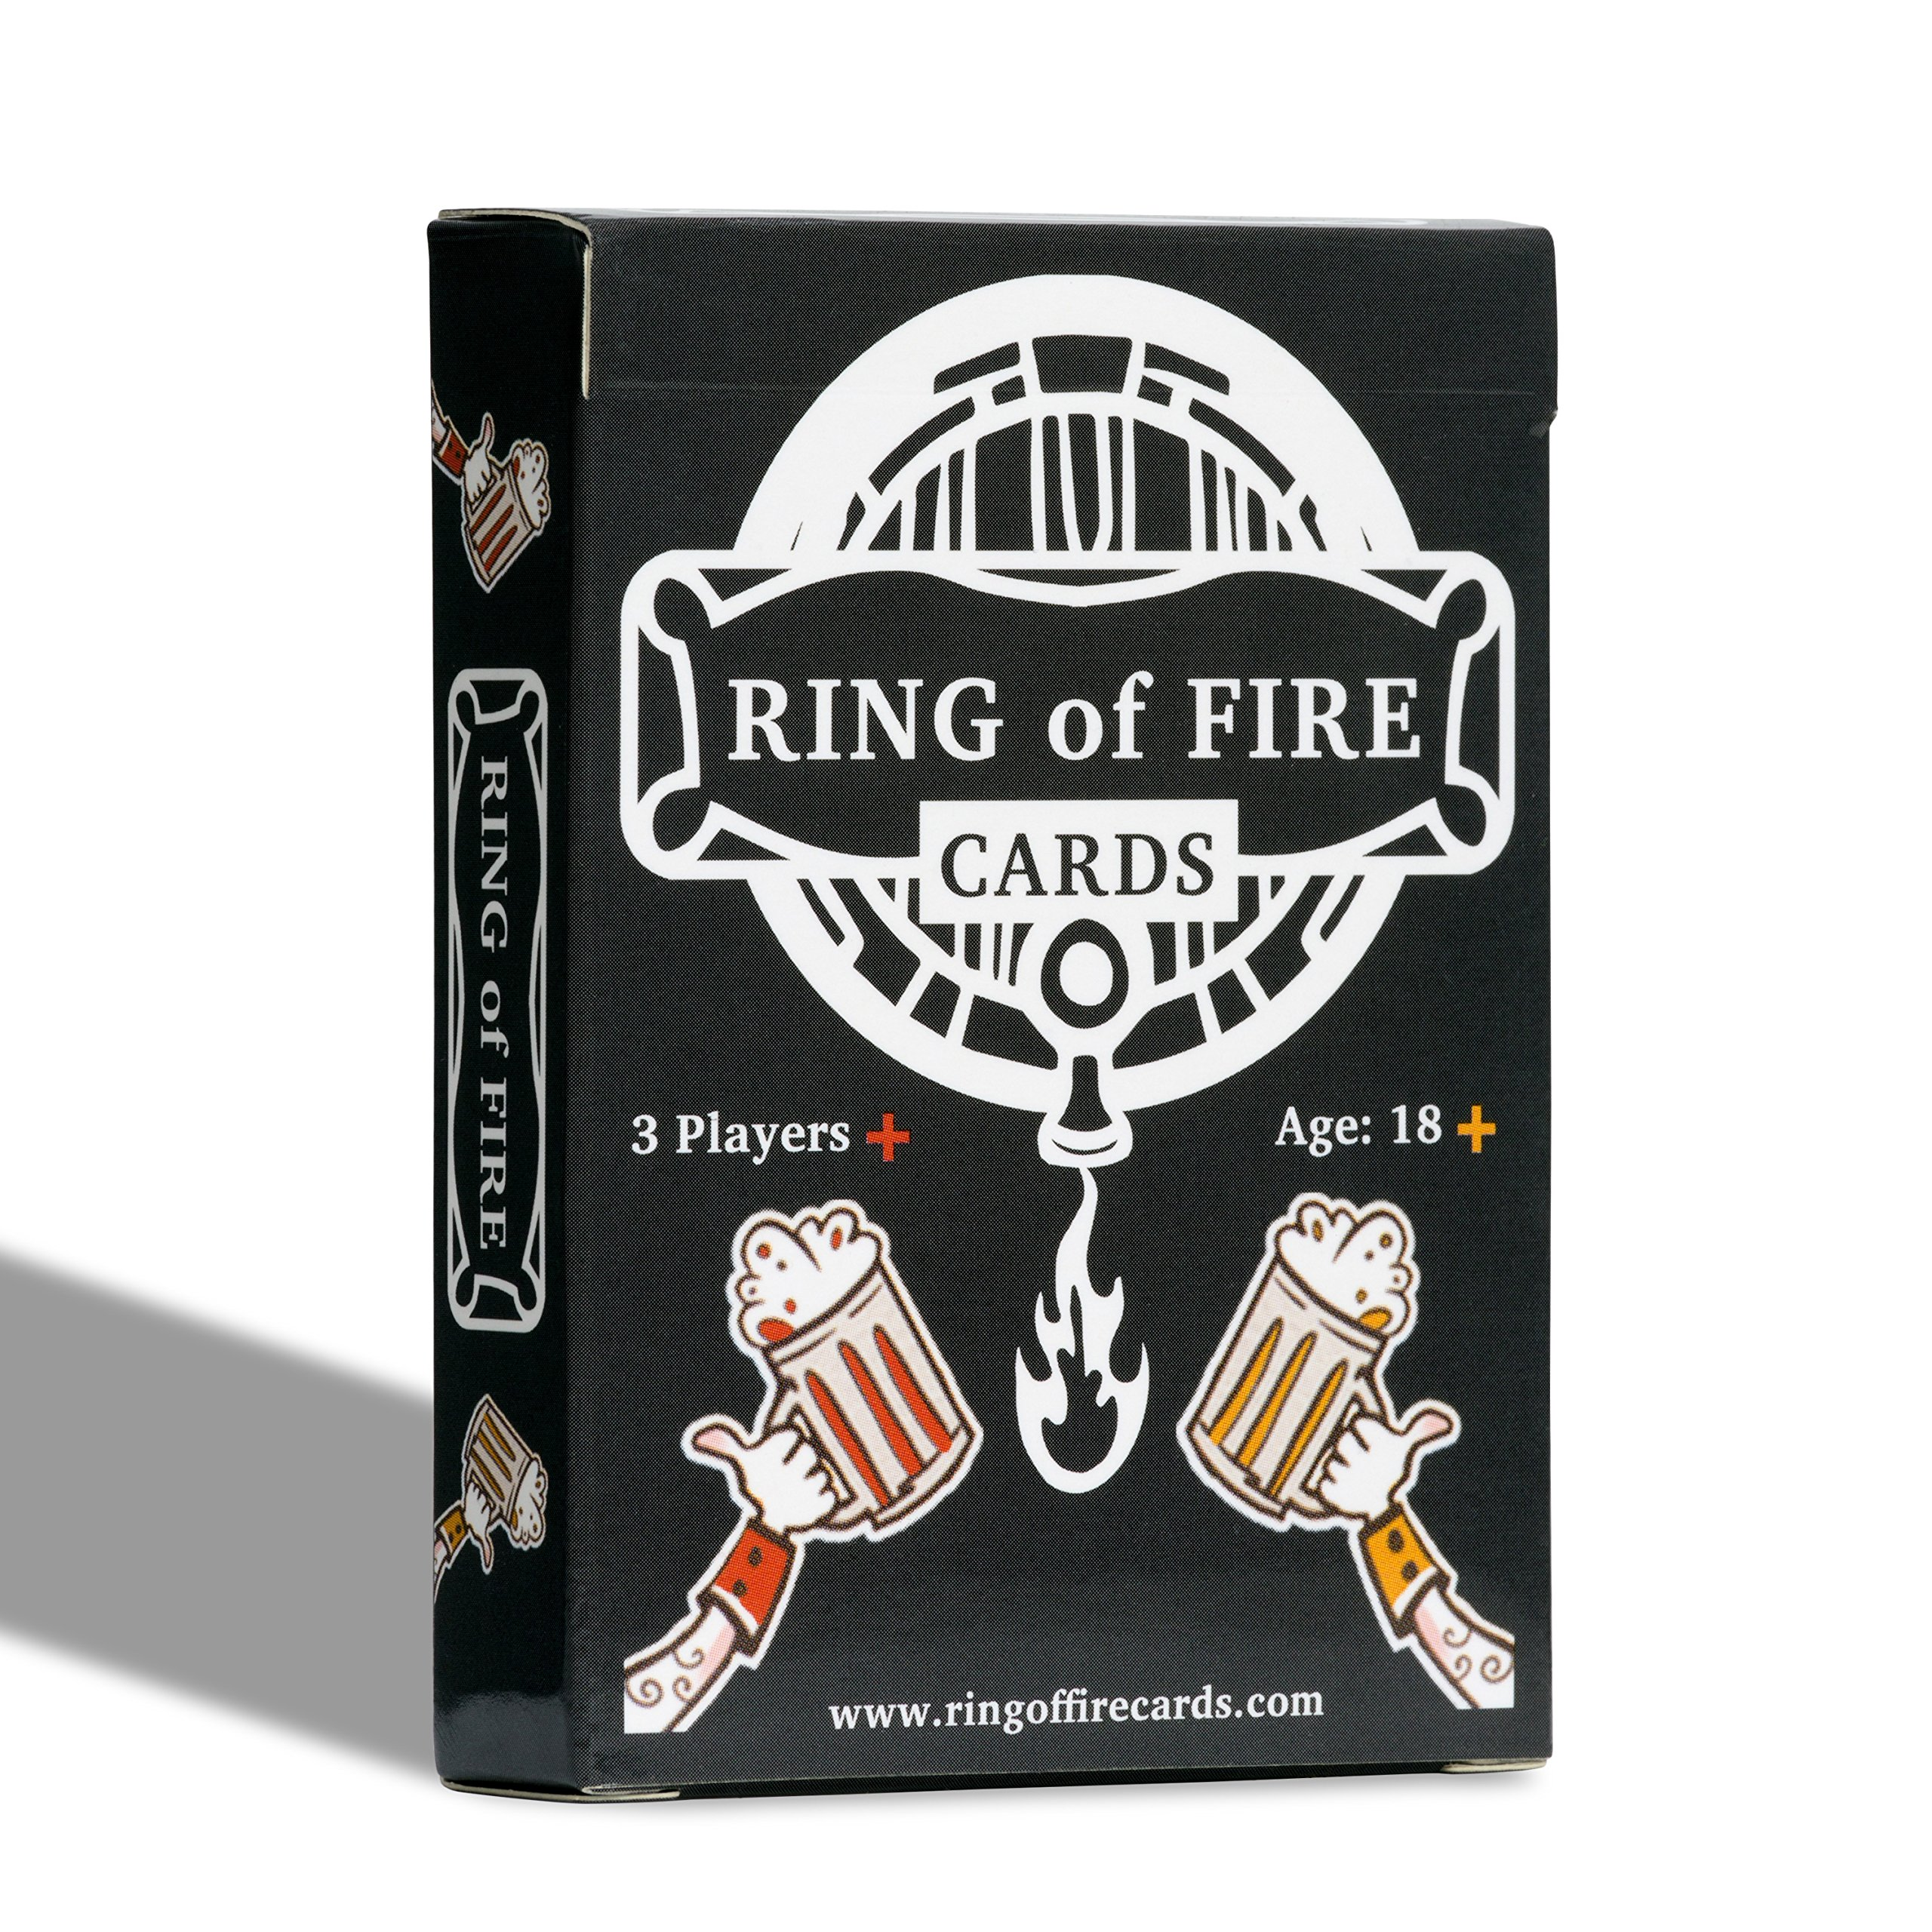 Ring of Fire Cards - The Classic Drinking Game with All the Rules Illustrated on the Cards - Great For Students and Parties